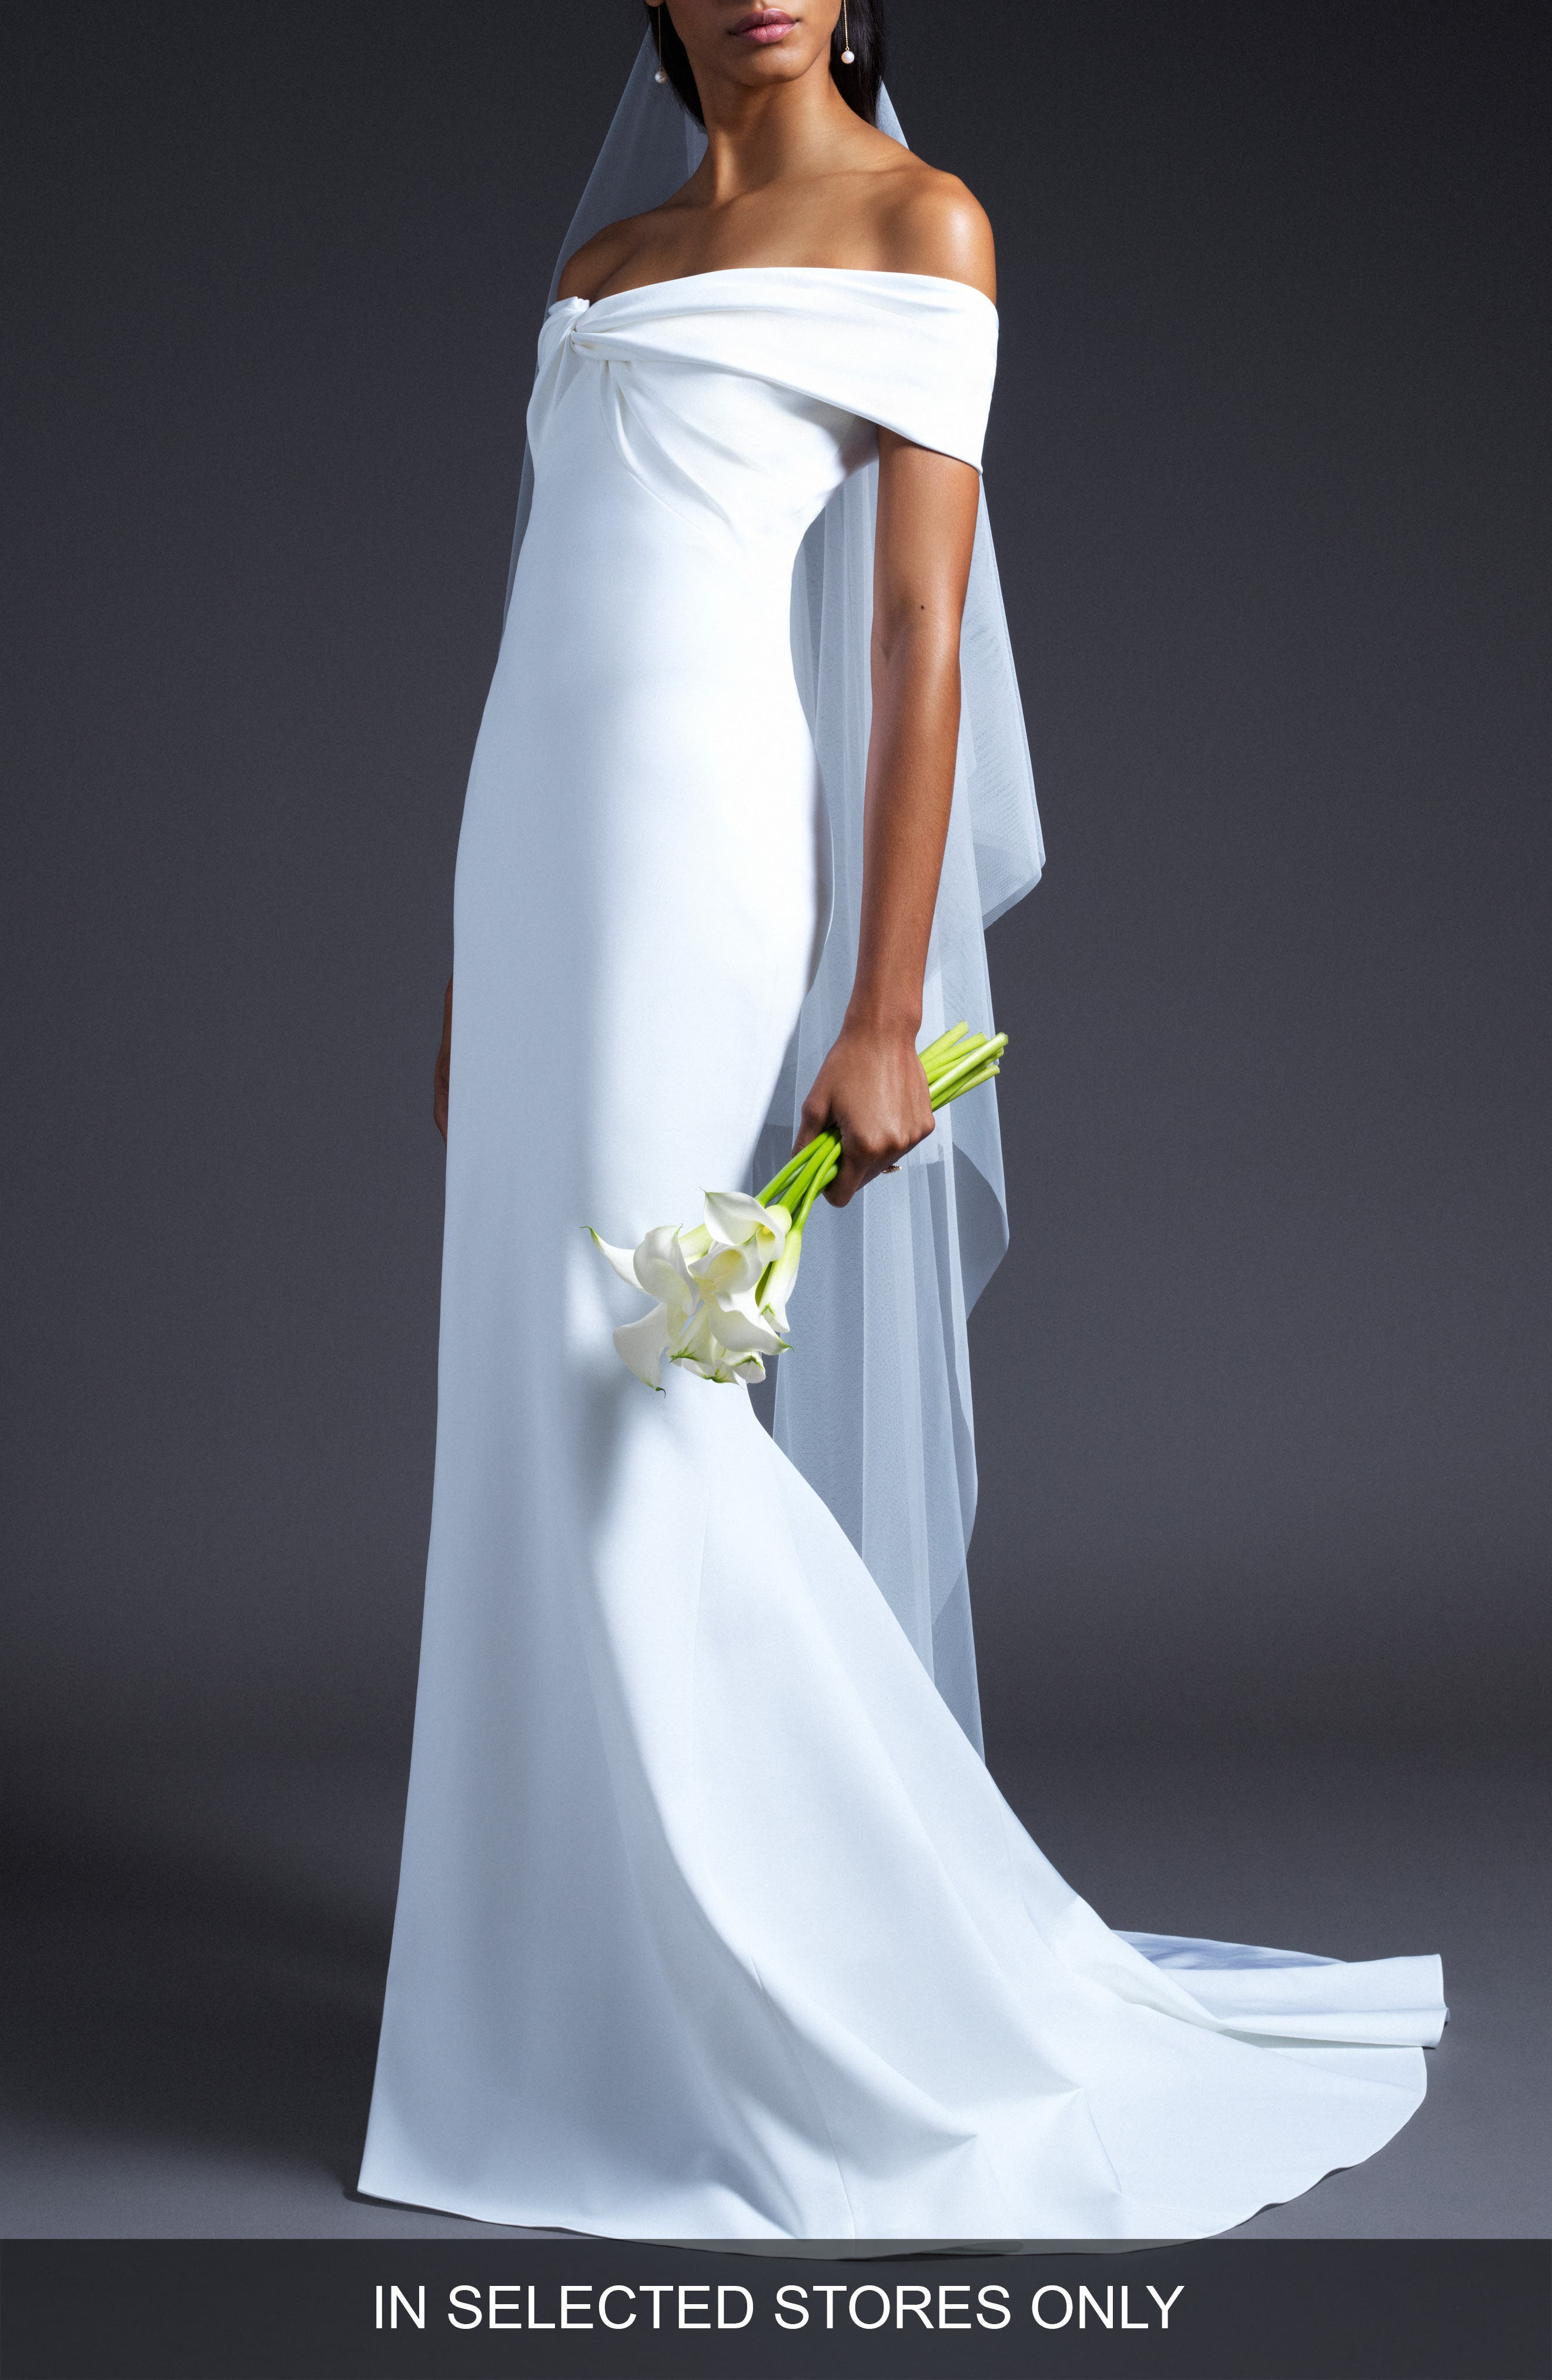 Cushnie Knotted Off The Shoulder Wedding Dress, Size IN STORE ONLY - White